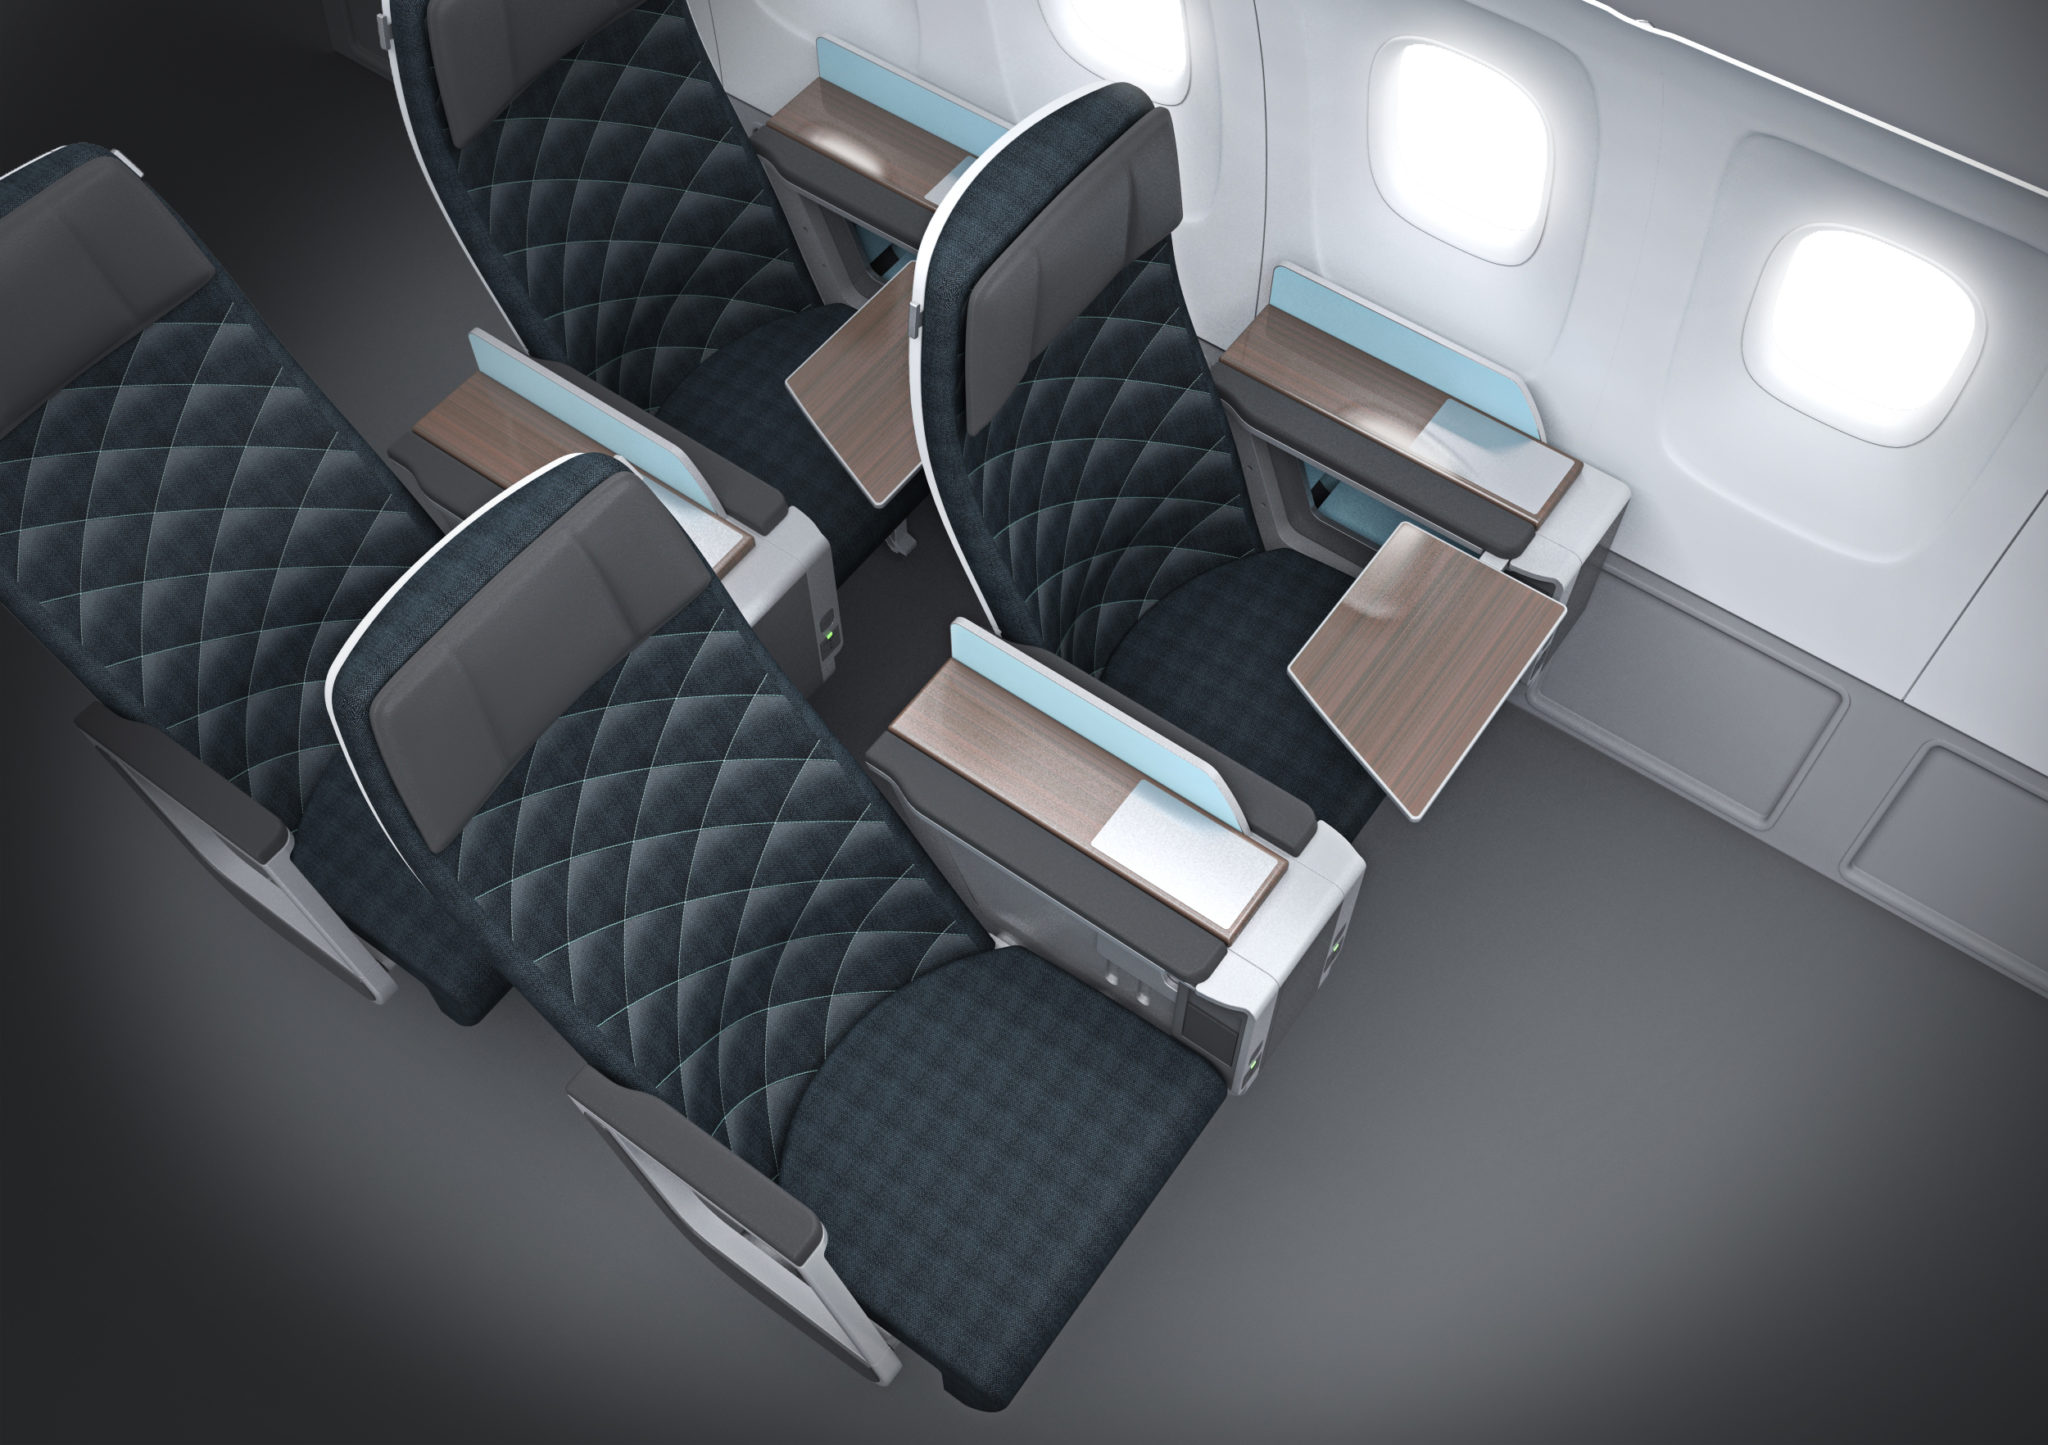 Acro's Series 7, its premium economy product, has been designed to remove seat structural outcroppings from passengers' way. Image - Acro